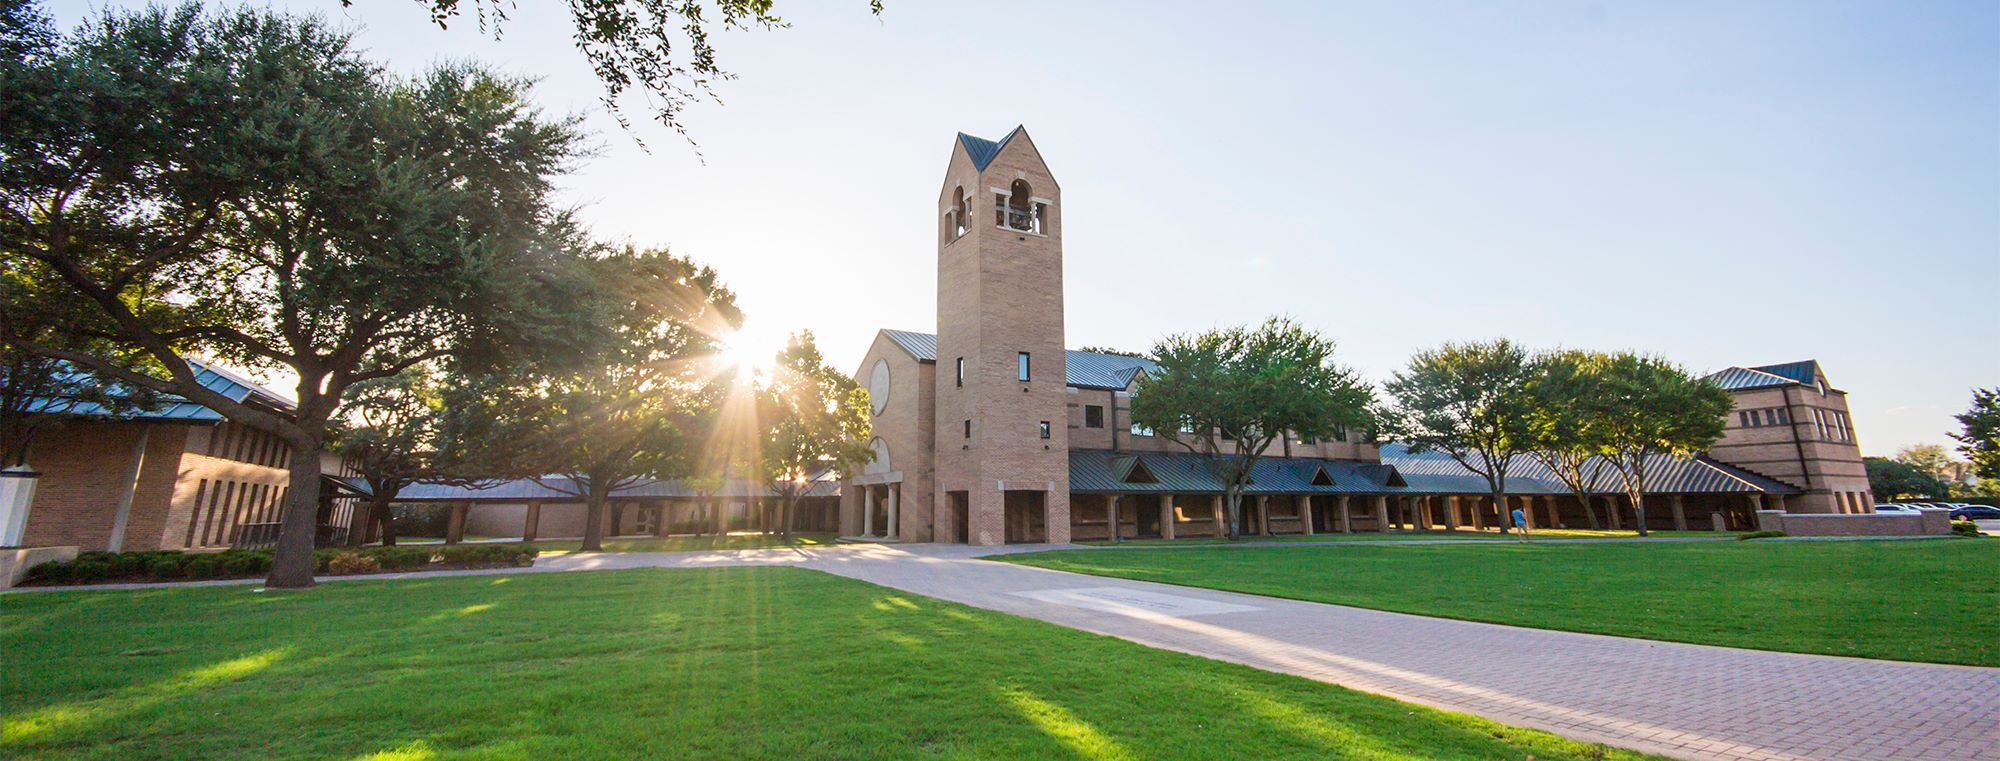 St. Mark's School of Texas in Dallas, Texas